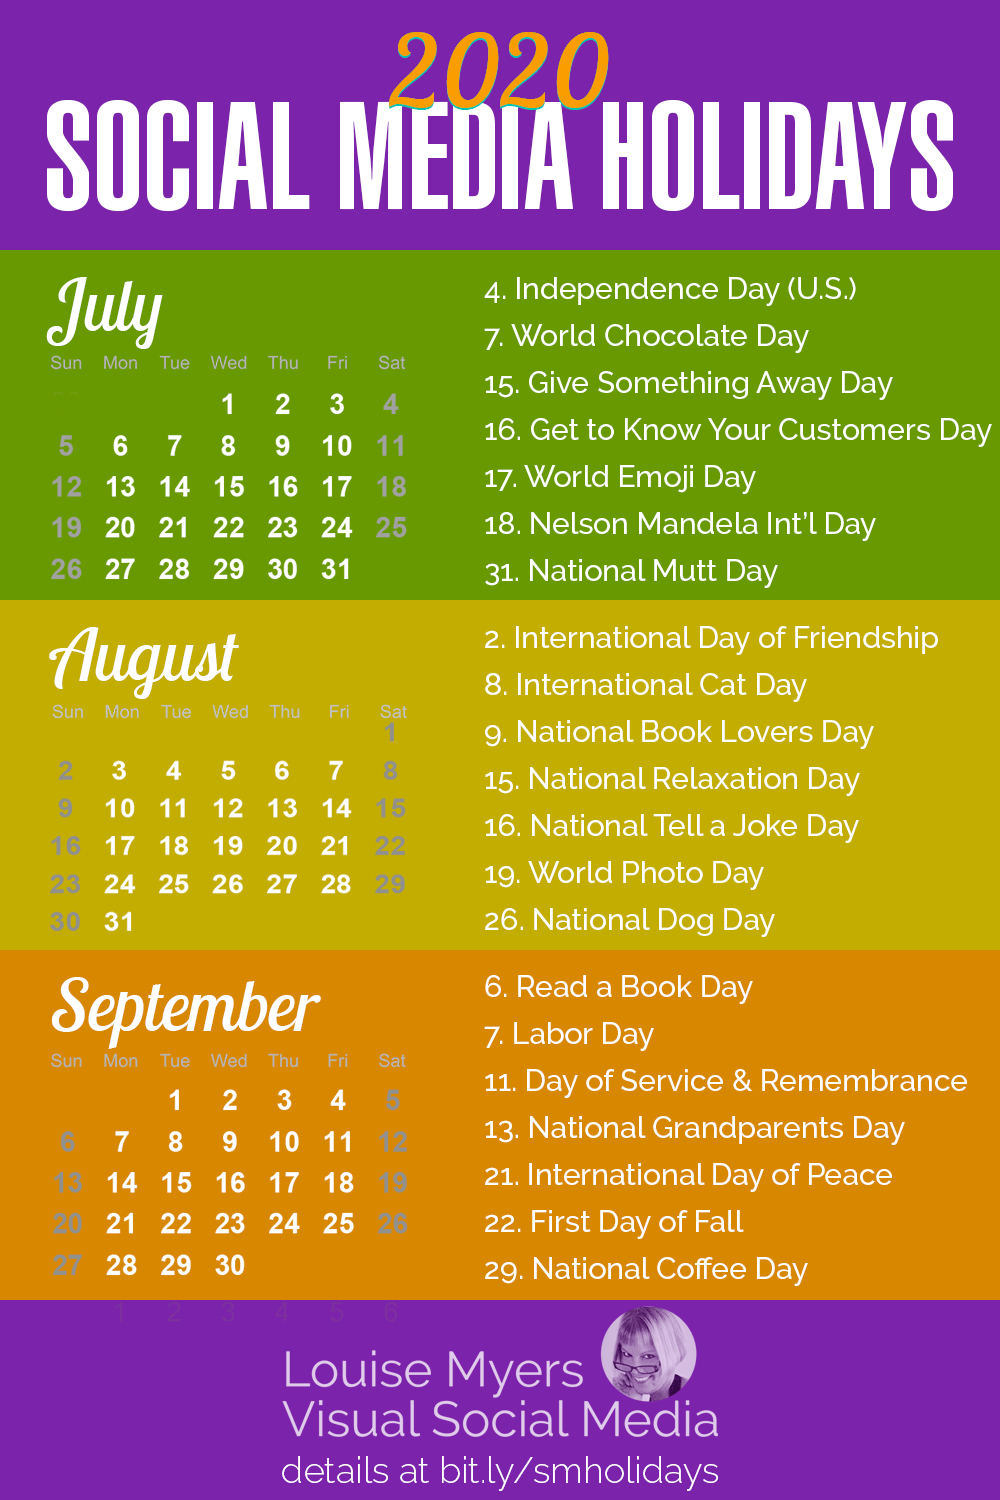 84 Social Media Holidays You Need In 2020: Indispensable! for International Days In June